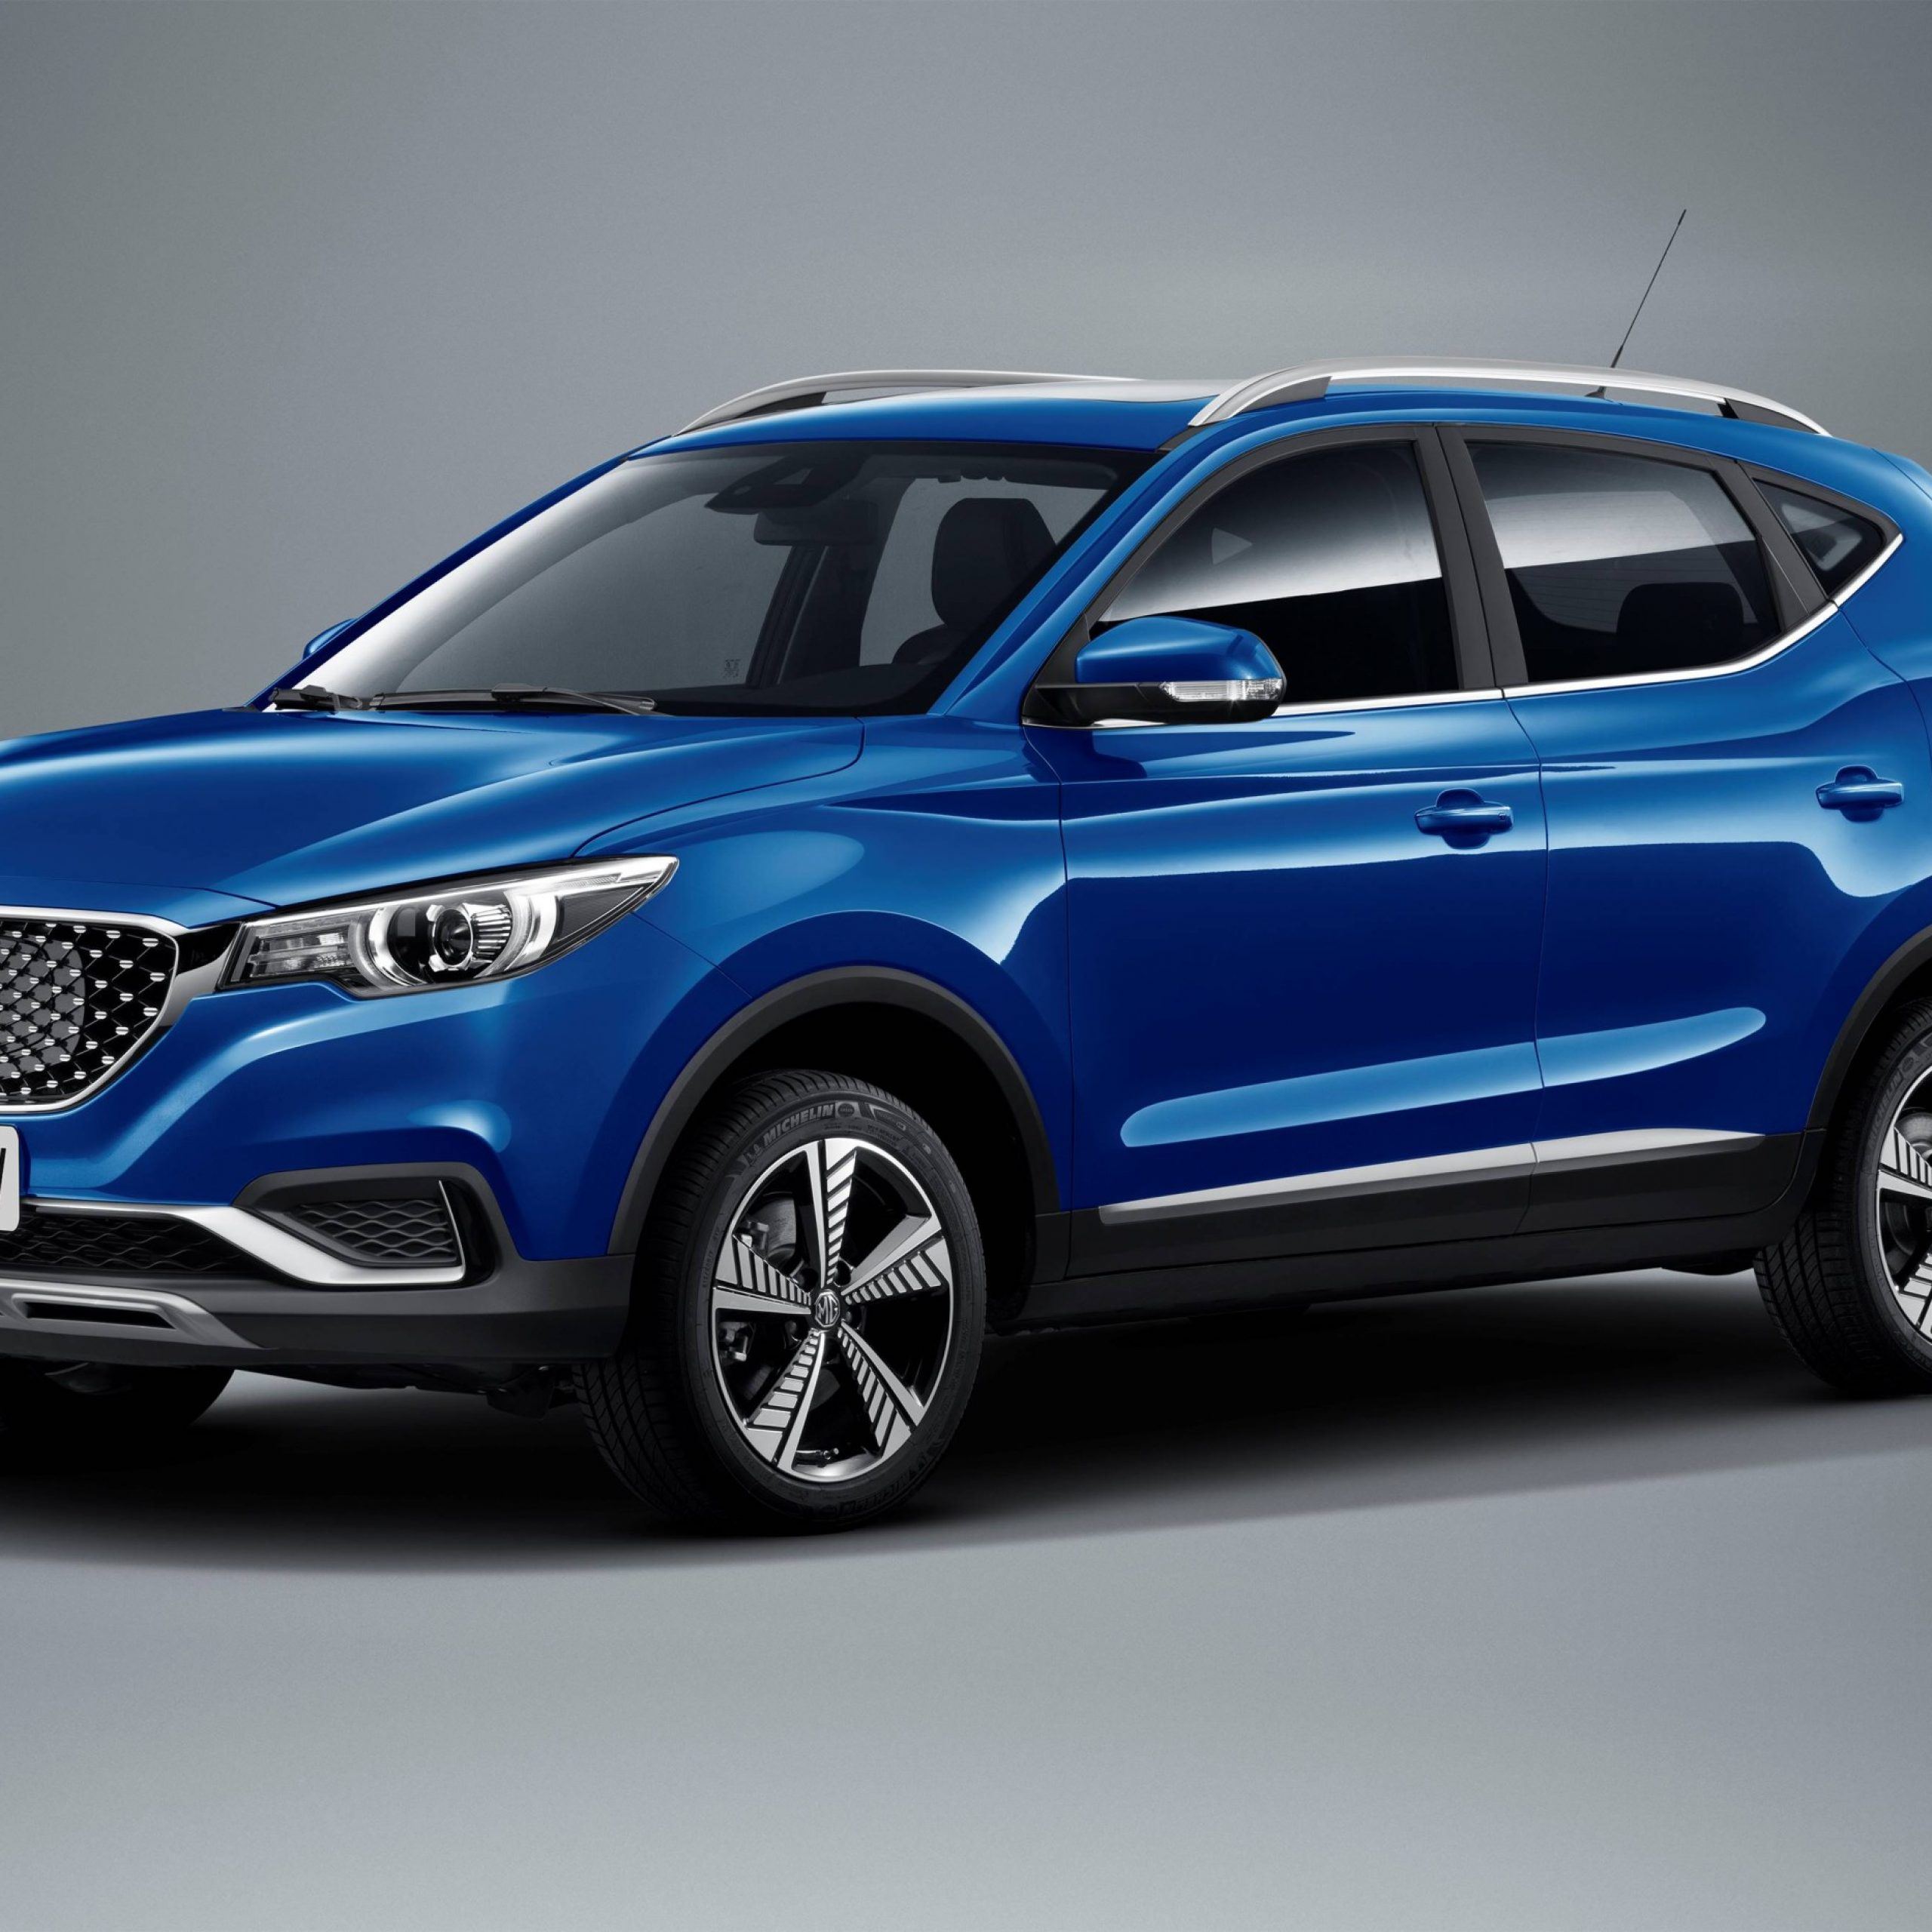 looking to go electric mg motors first ever all electric suv is now on sale in the uae for under aed